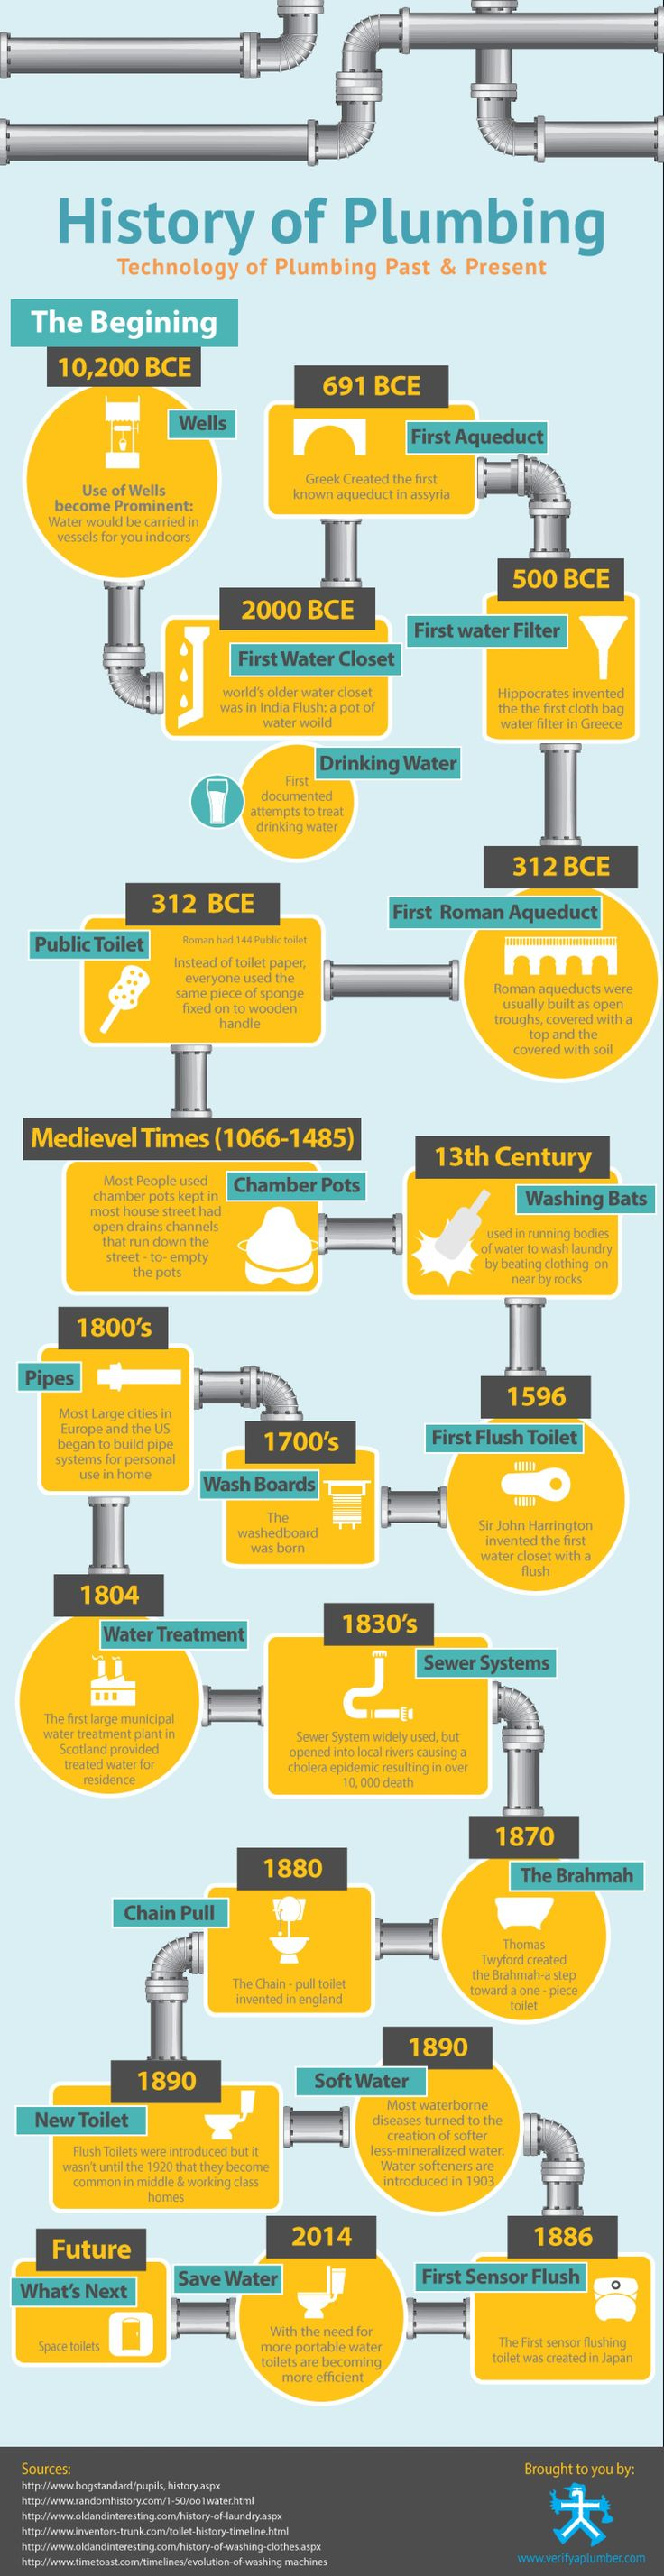 The History of Plumbing Infographic  Every Plumbing Need at Carrollton, Texas, Solved http://carrolltonplumbingsquad.com/